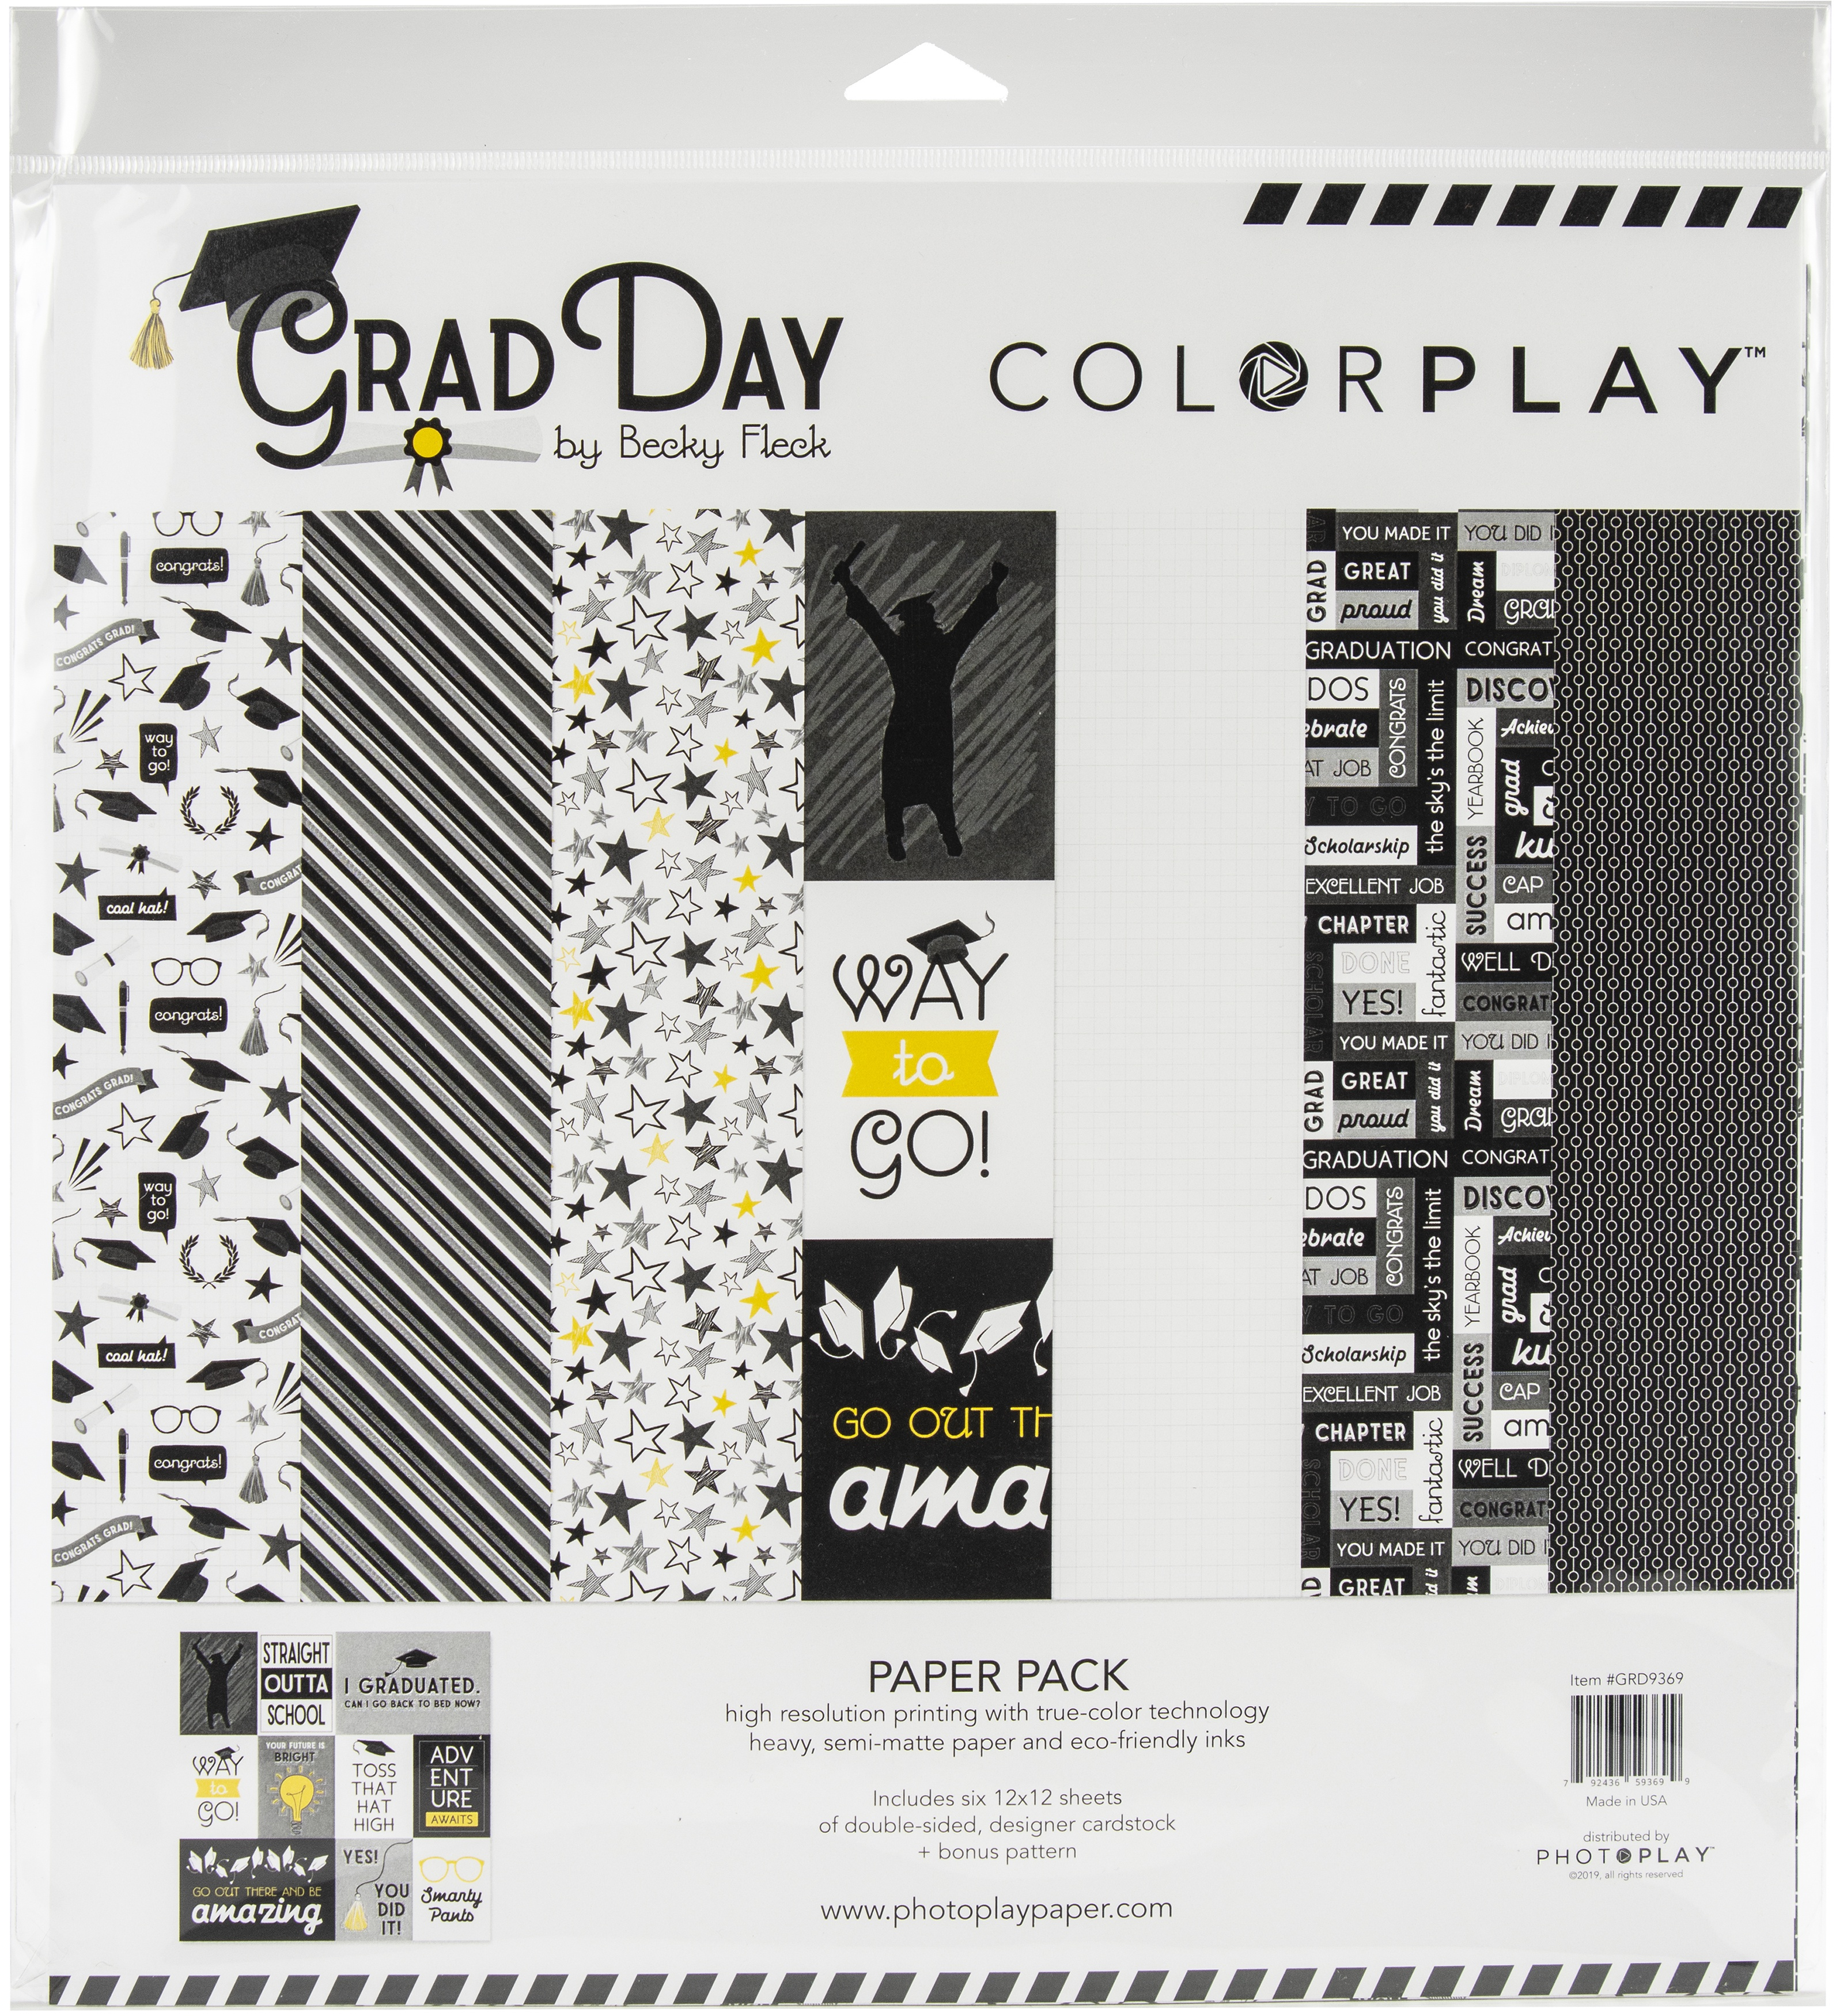 Grad Day ColorPlay Collection Pack 12X12 6 Designs/2 Each + Bonus